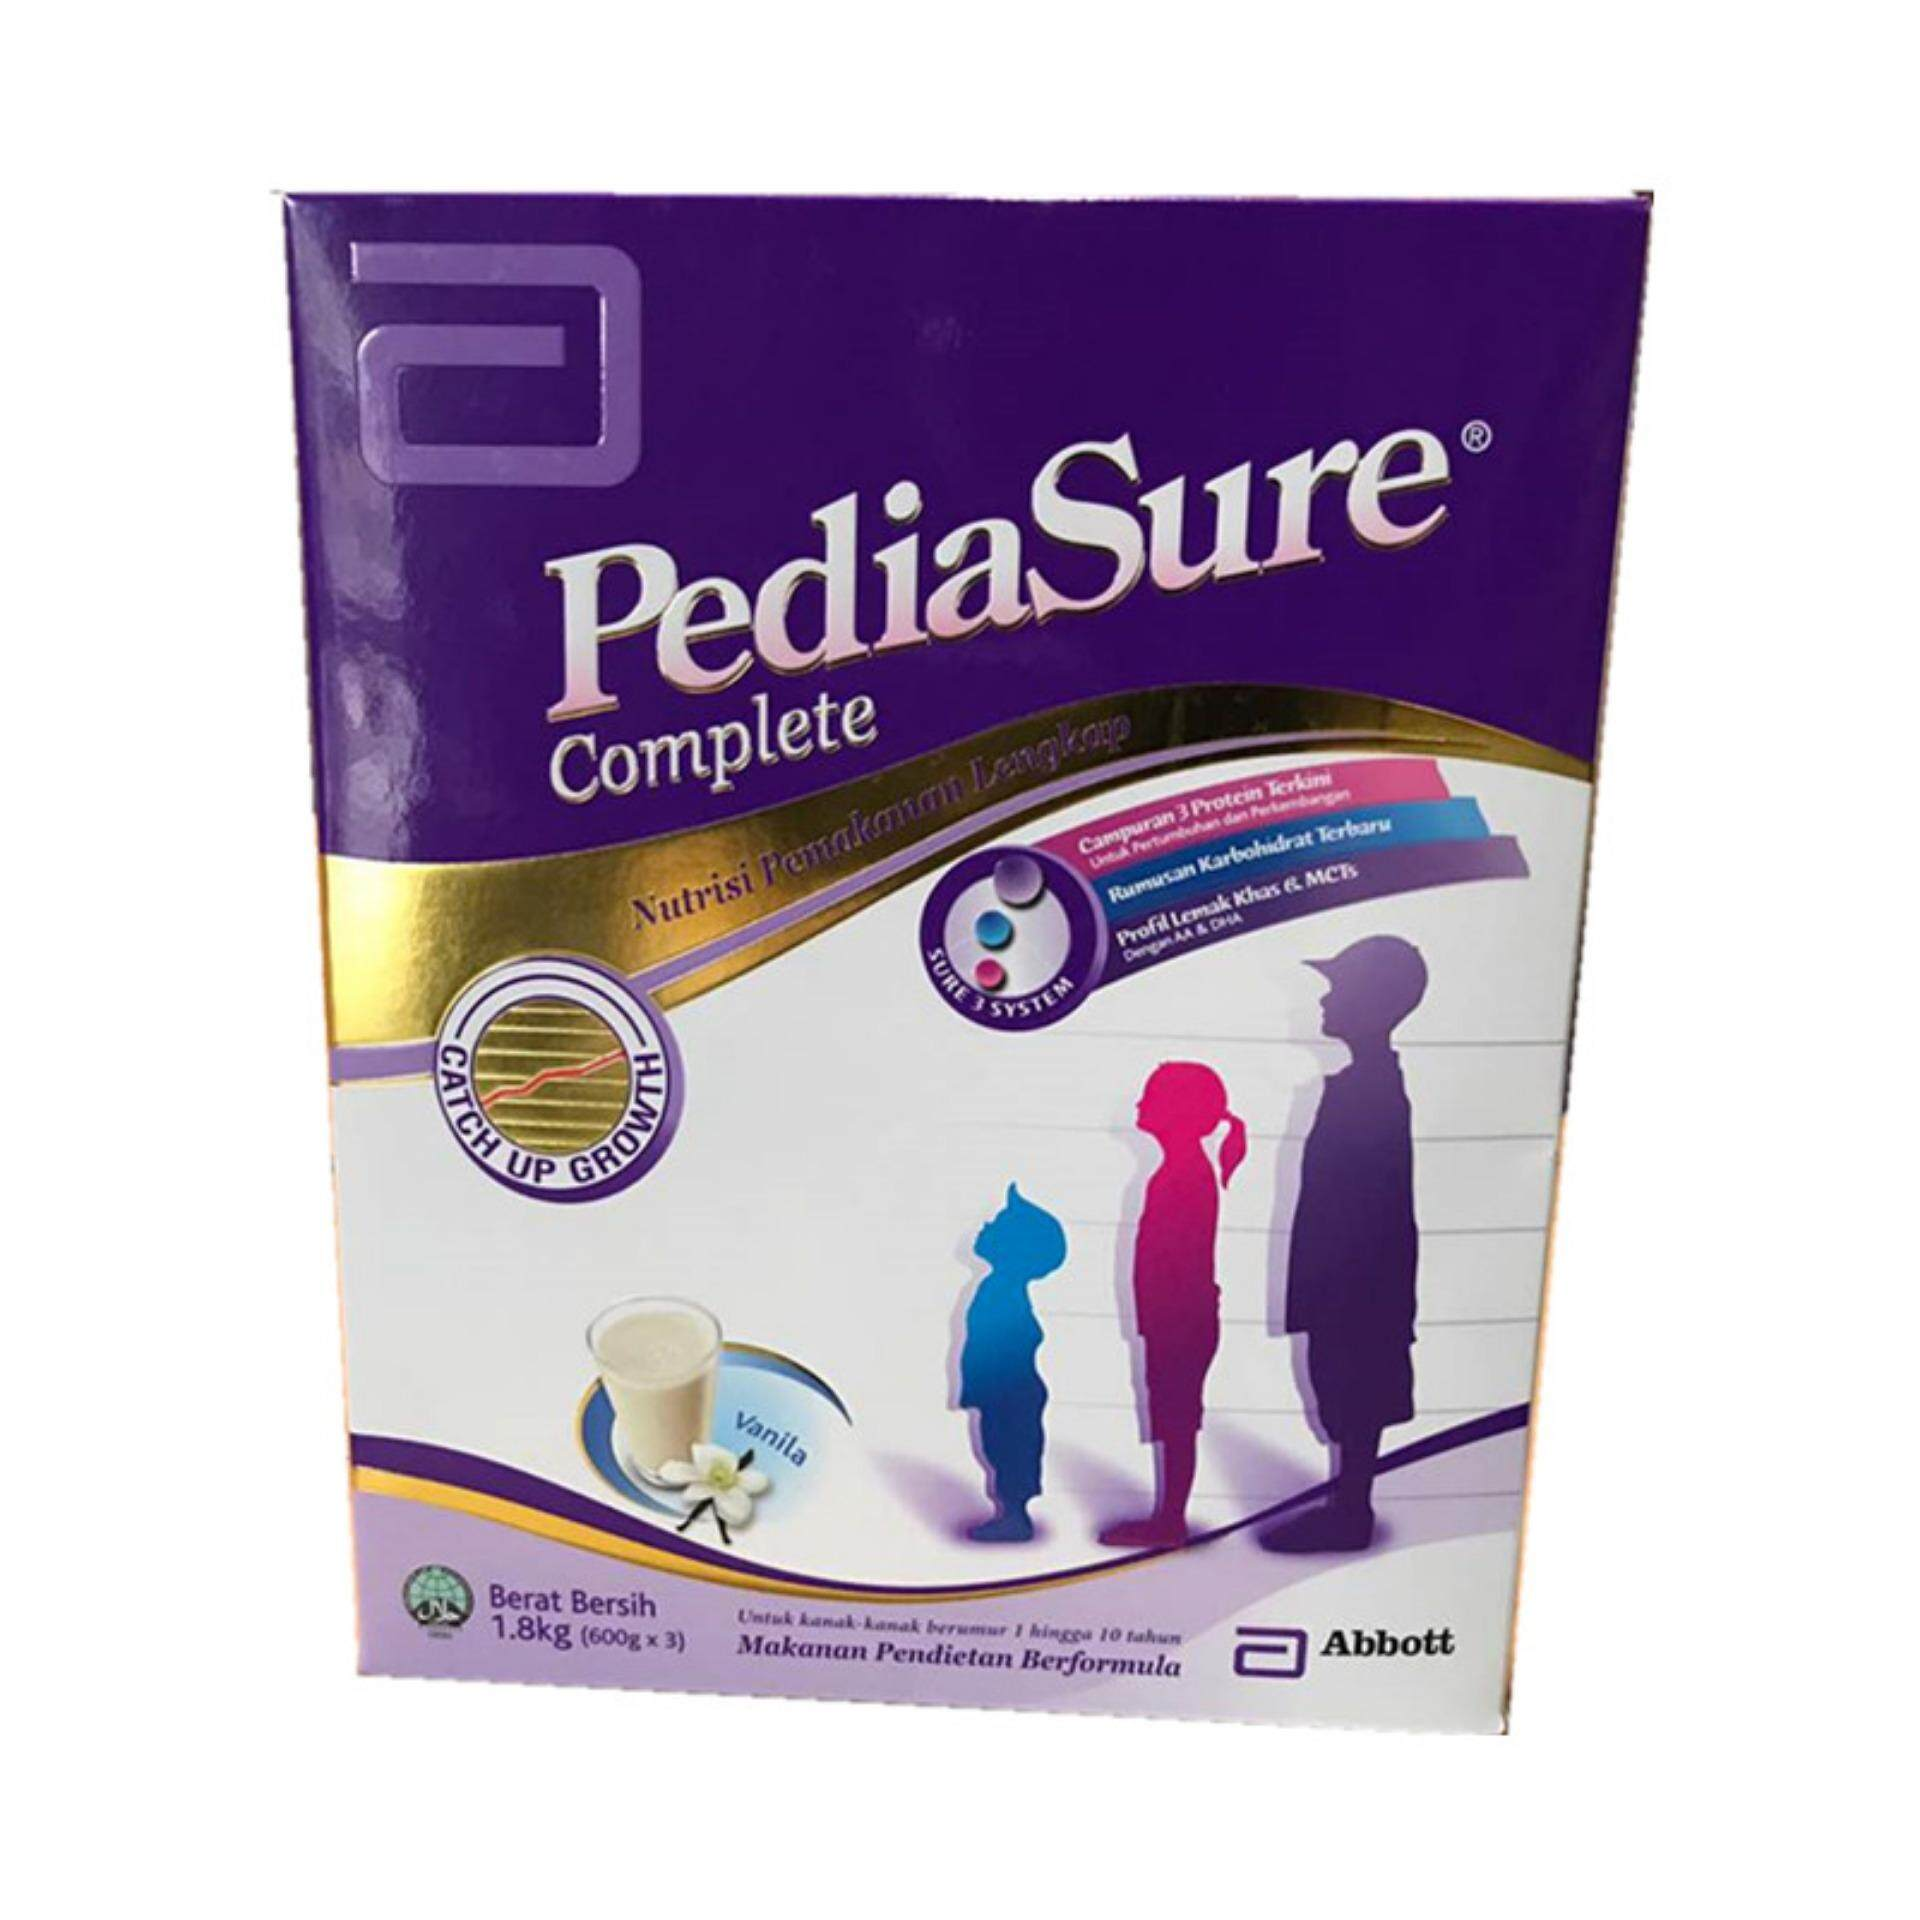 PEDIASURE COMPLETE 1.8KG VANILLA (New Packing)